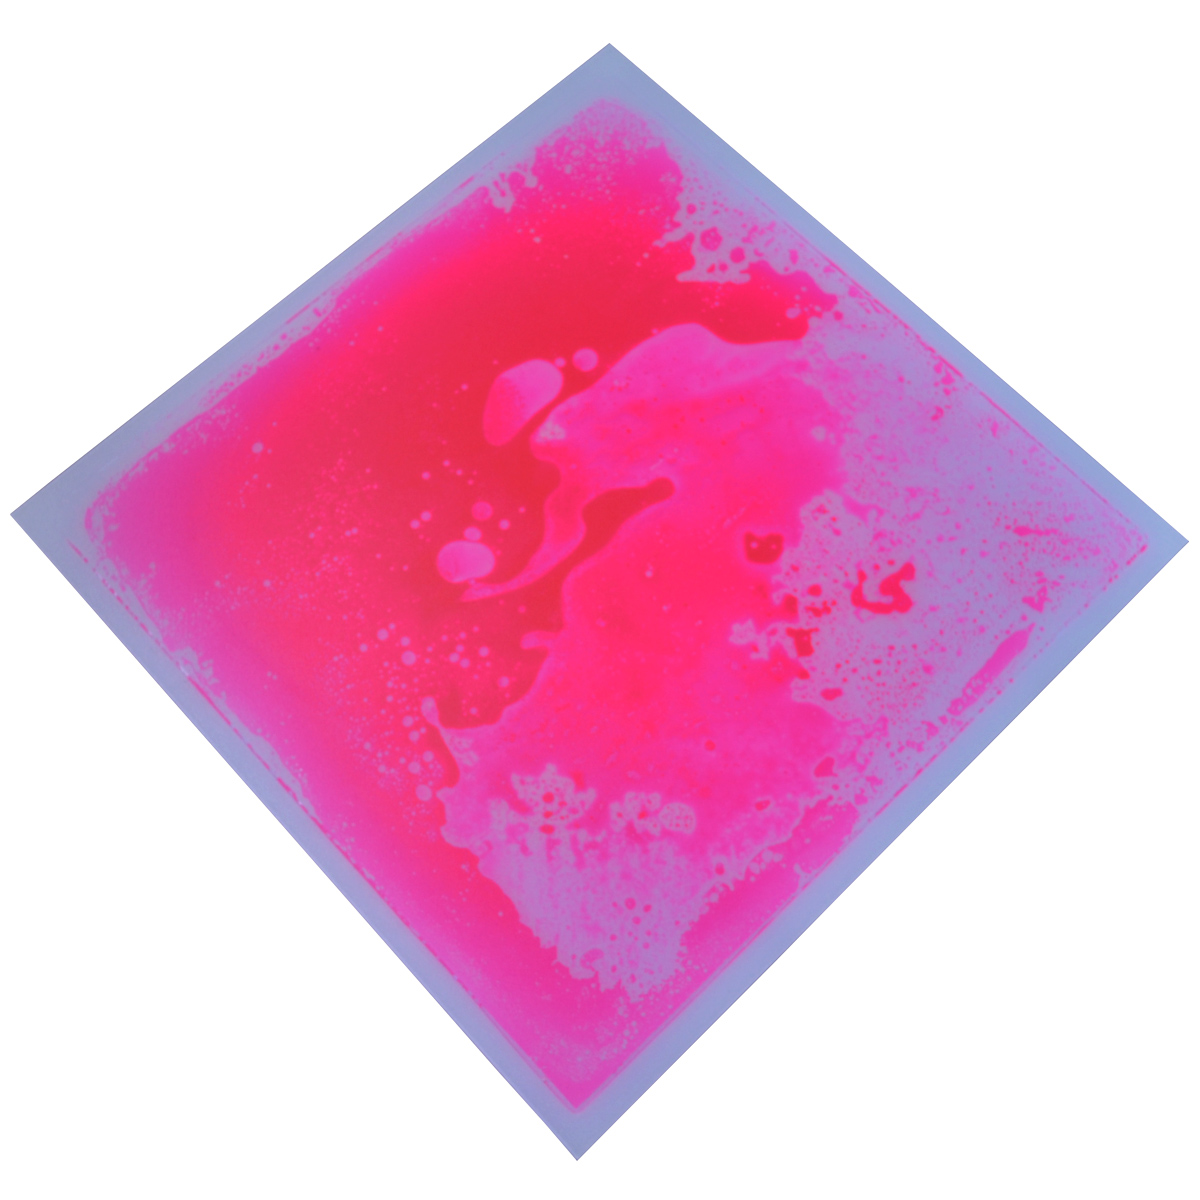 A11302 12x12 pink liquid floor tile home decor tiles for bar a11302 12x12 pink liquid floor tile home decor tiles for bar nightclub ktv decoration dailygadgetfo Choice Image